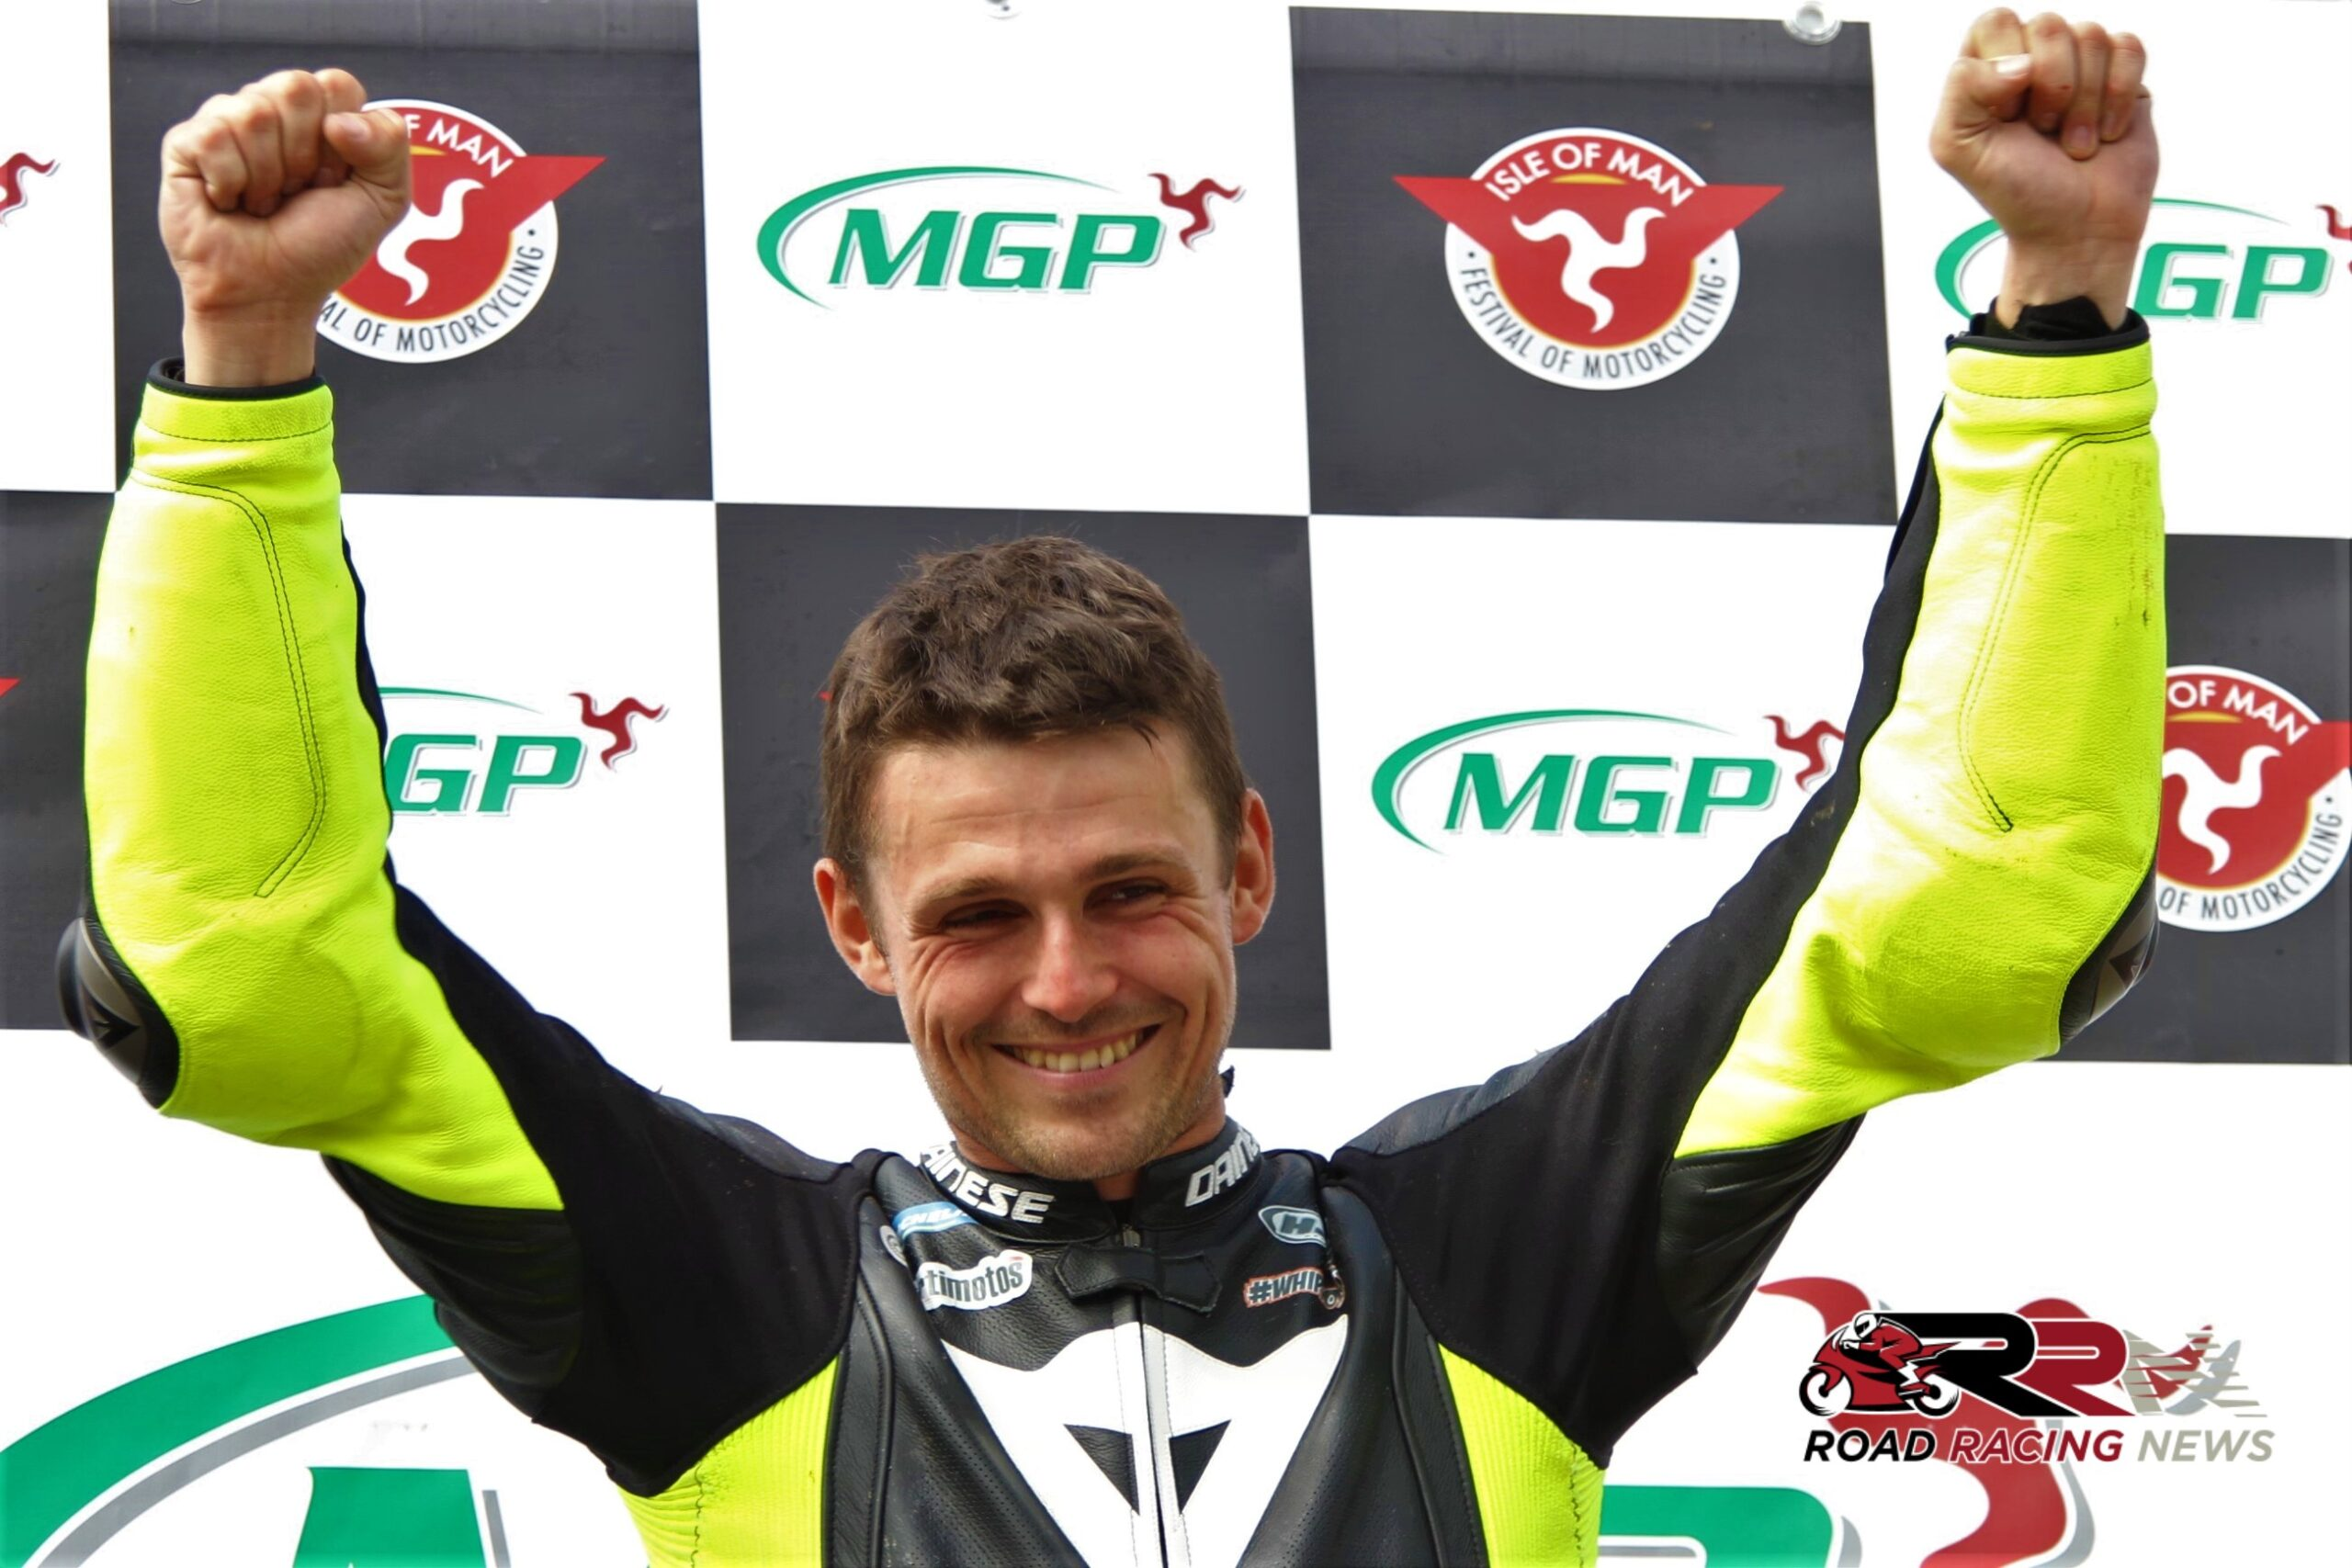 Yves Bian Wraps Up Maiden IRRC Supersport Title